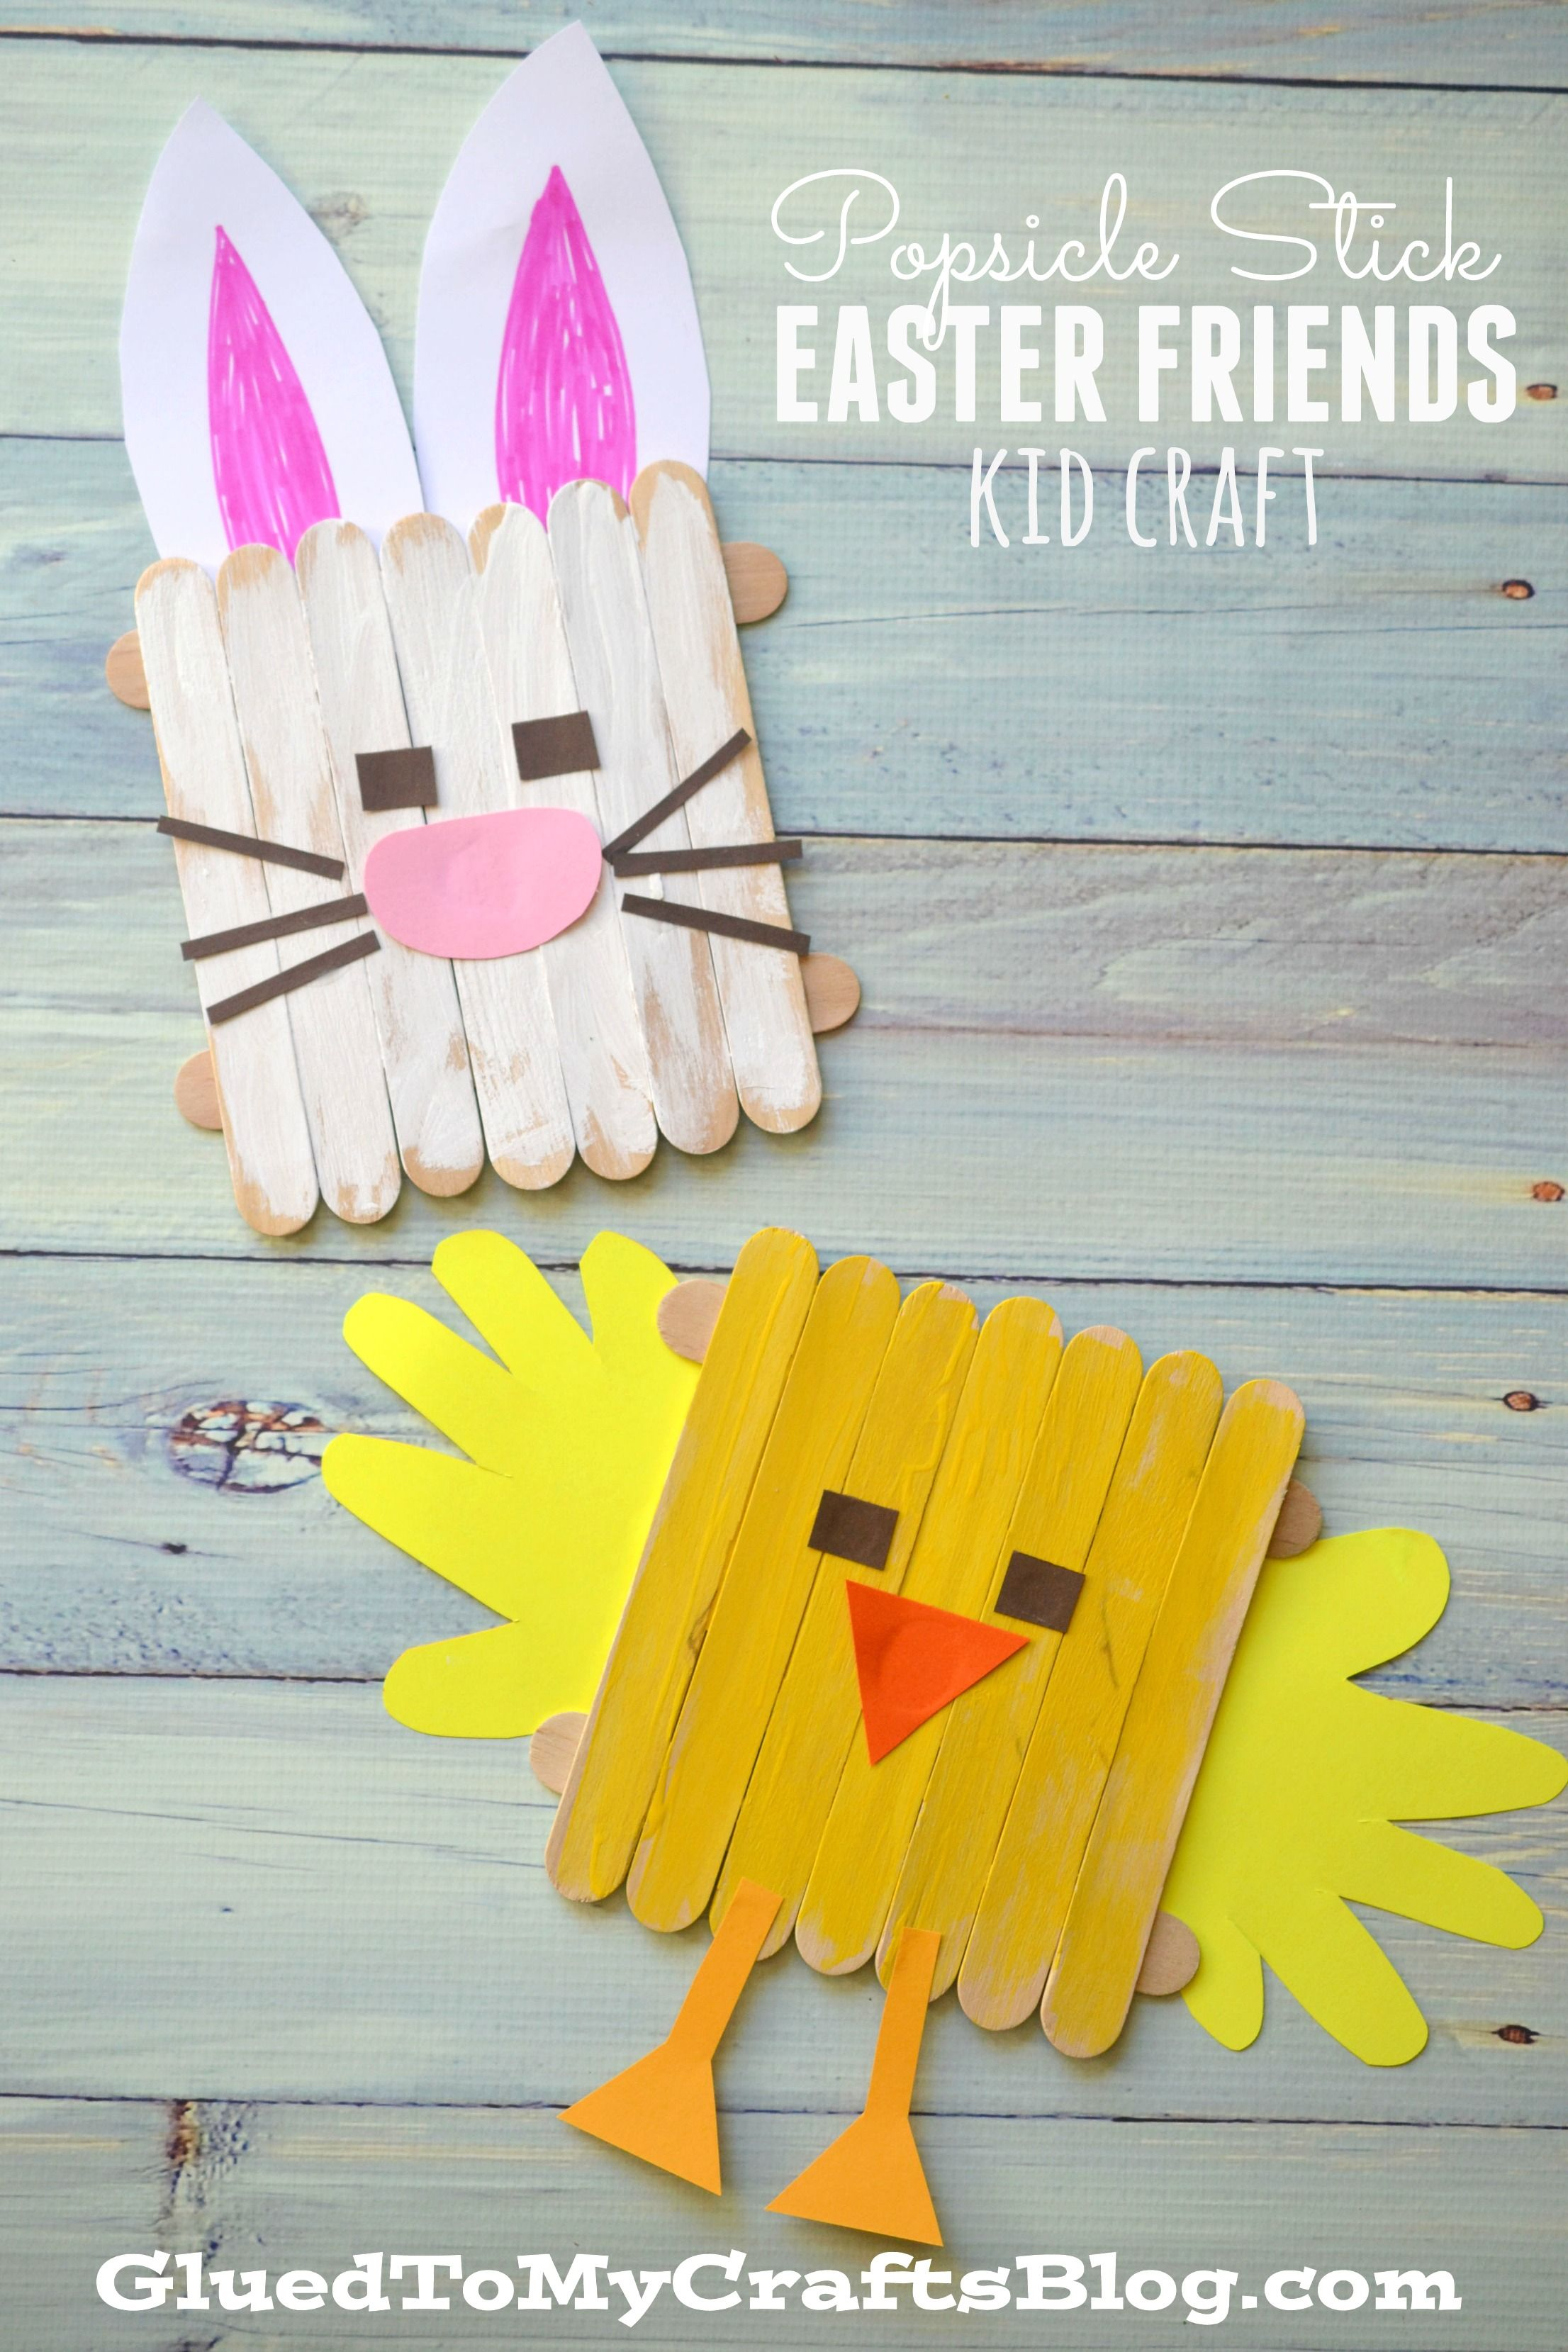 Popsicle Stick Easter Friends Kid Craft Easter Crafts Preschool Easter Arts And Crafts Easter Kids